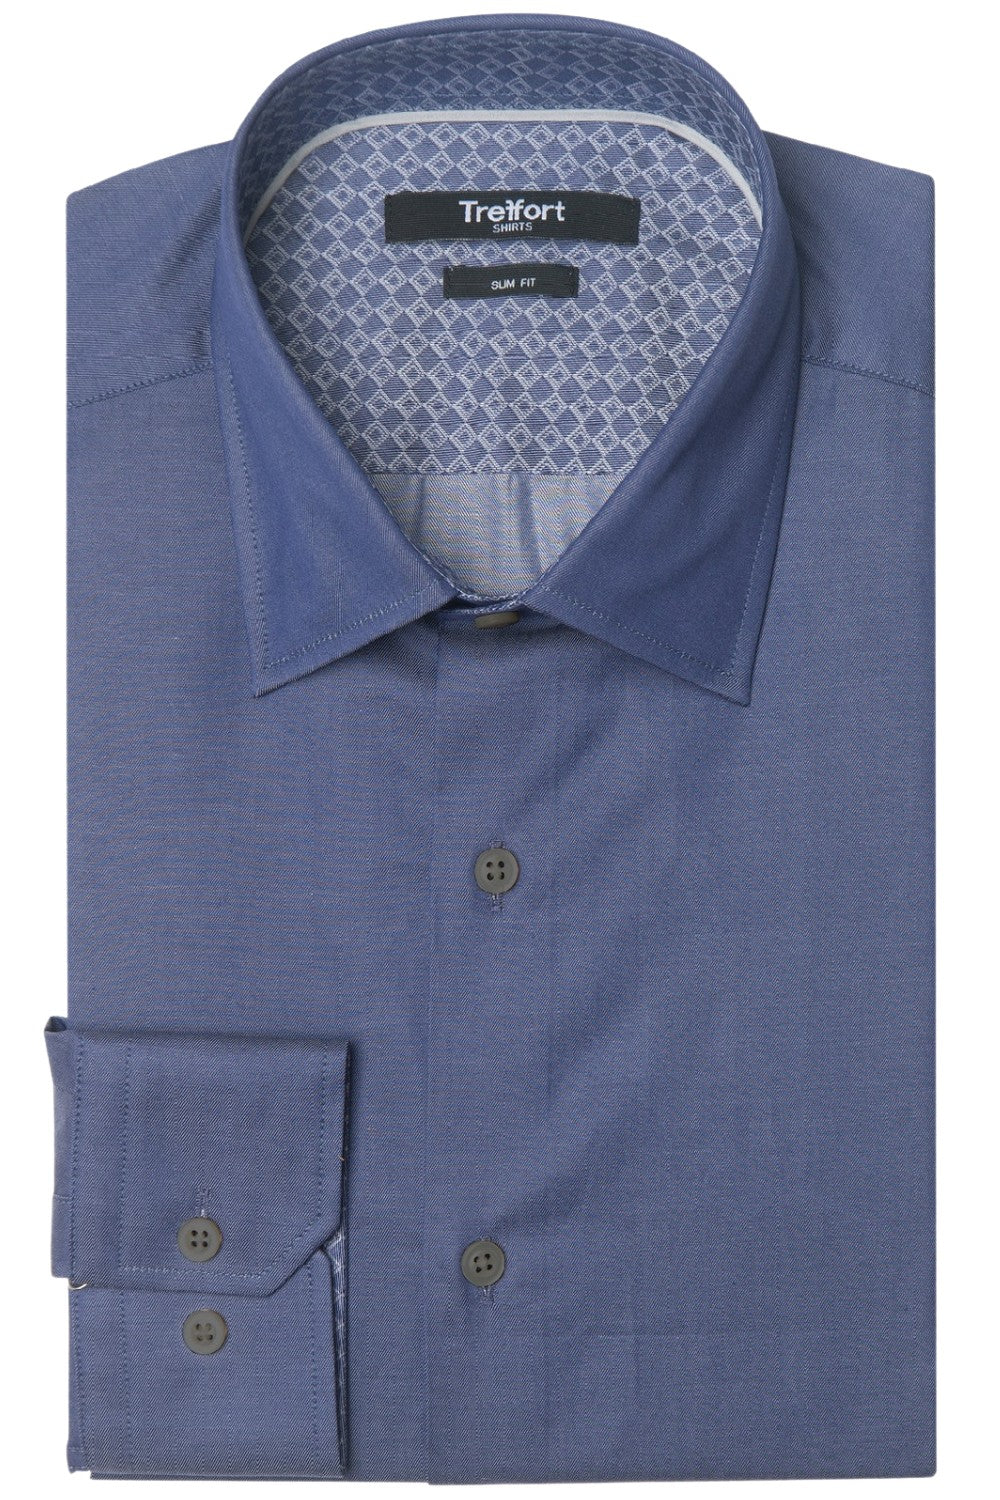 THE MERCER SHIRT (BLUE)